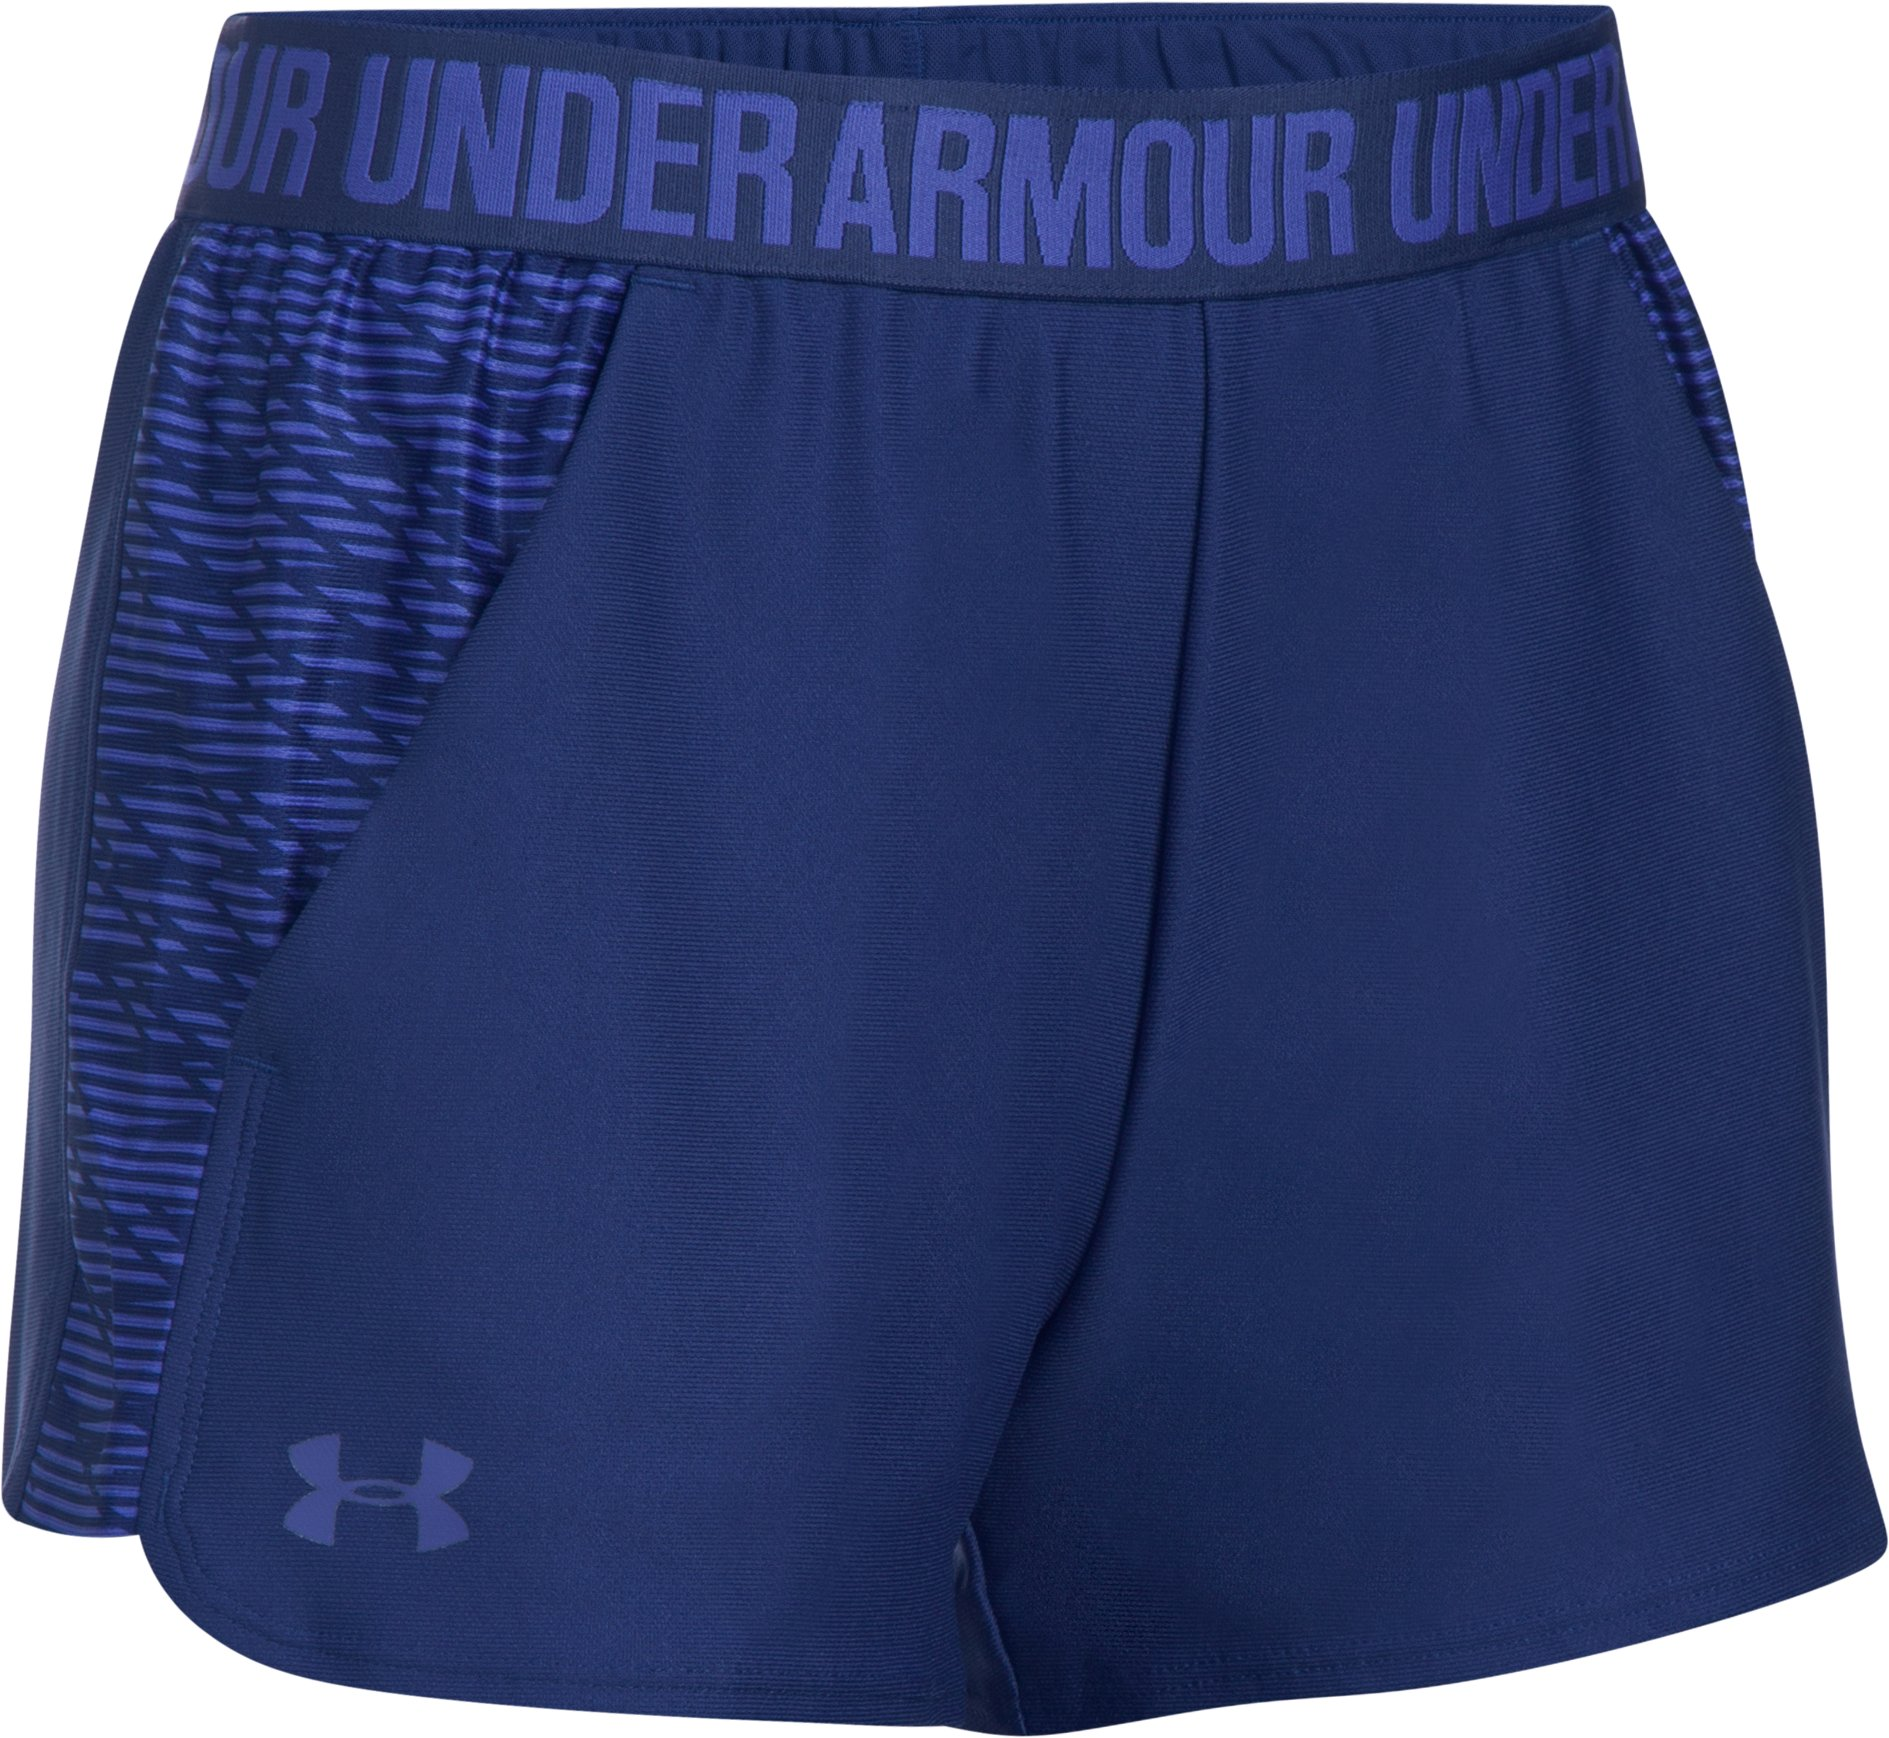 Women's UA Play Up Shorts 2.0 - Printed, EUROPA PURPLE,